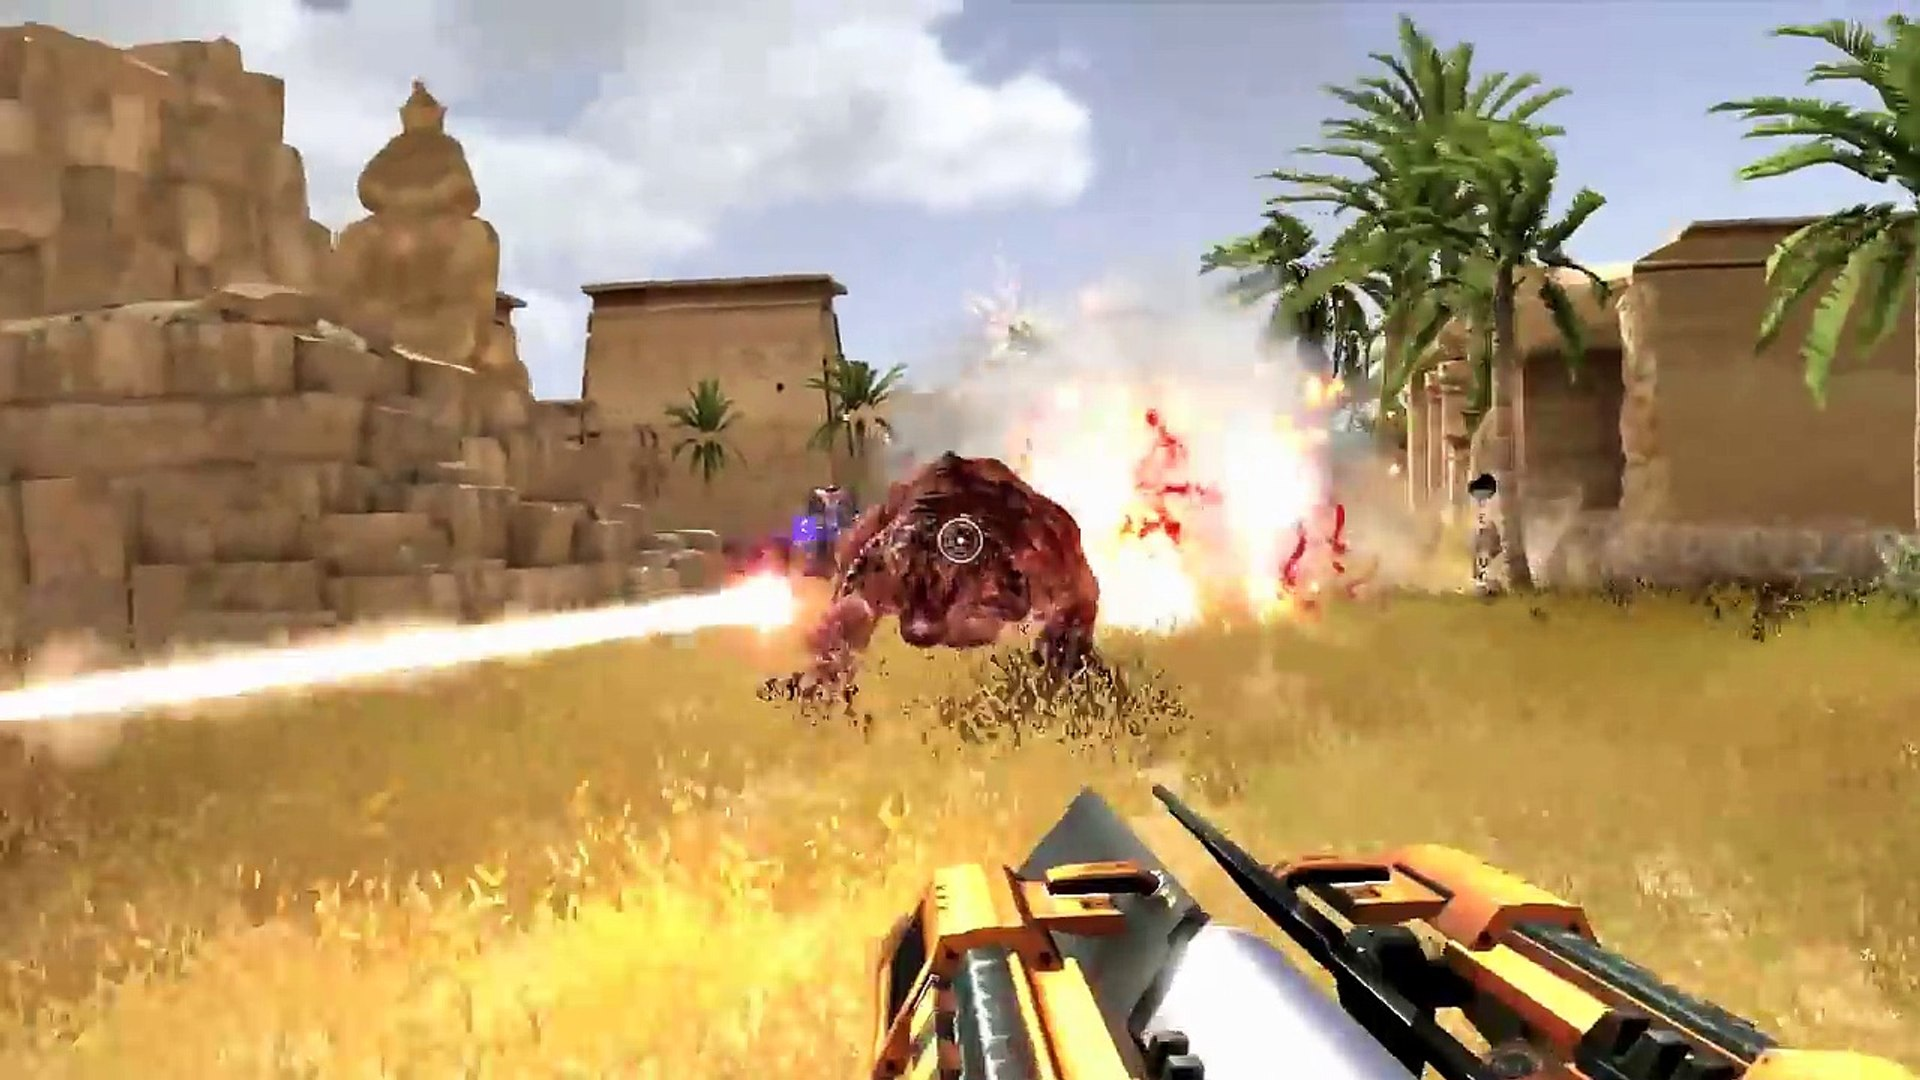 download serious sam 2 full game tpb